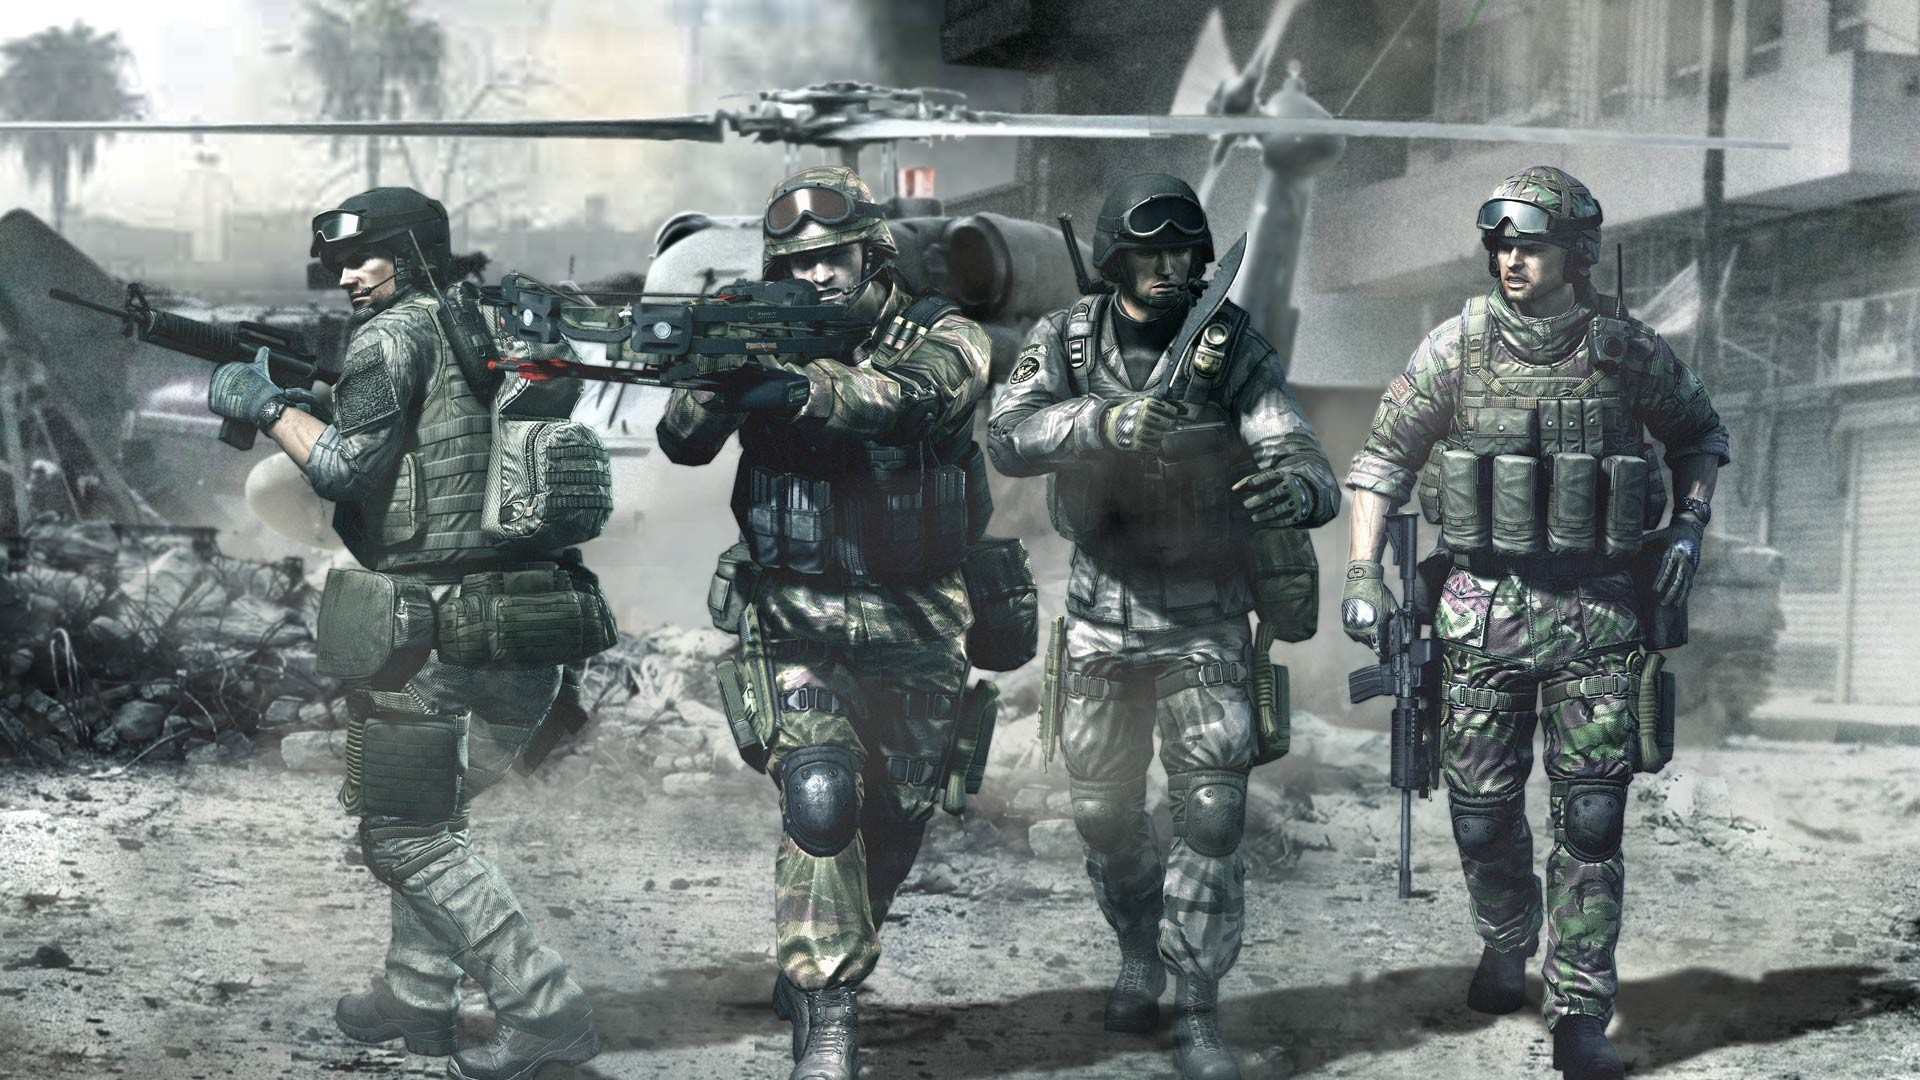 1920x1080 Top special forces wallpaper military army special forces crackberry wallpaper  military special forces kommando